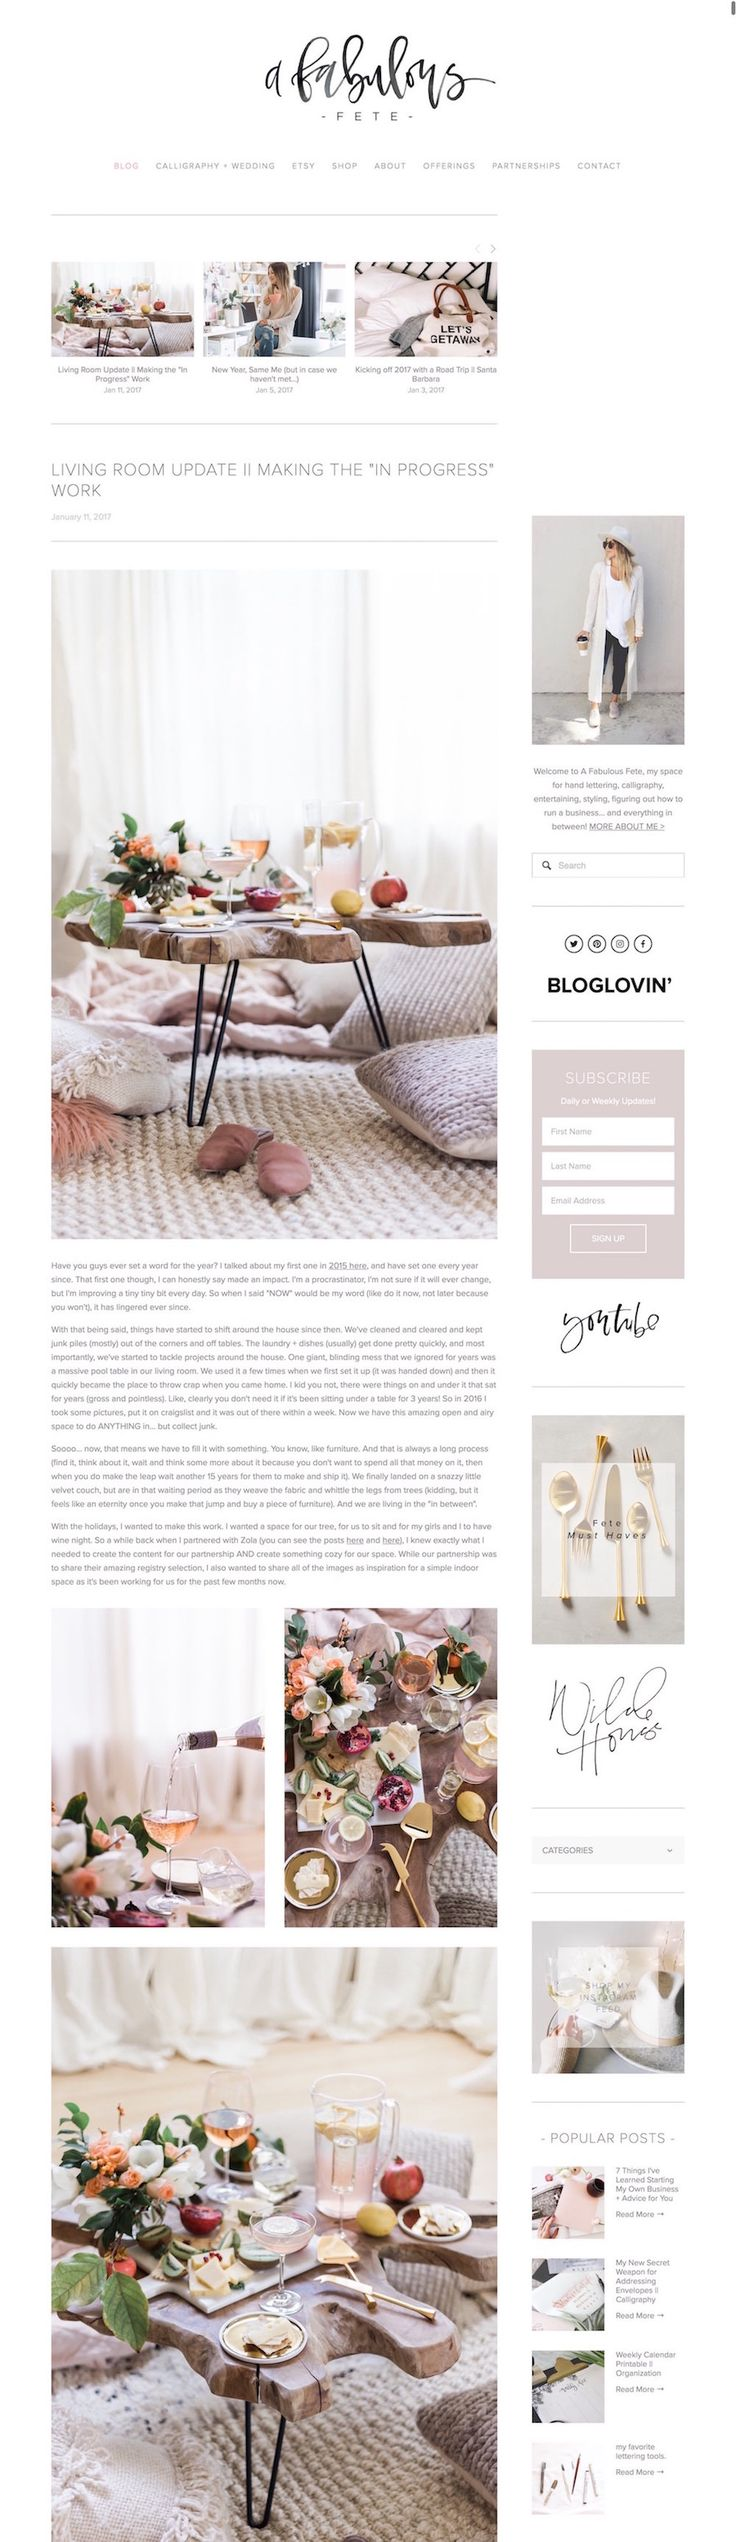 10 Squarespace example websites for inspiration • blogger edition — The Paige Studio • Squarespace Website Designer